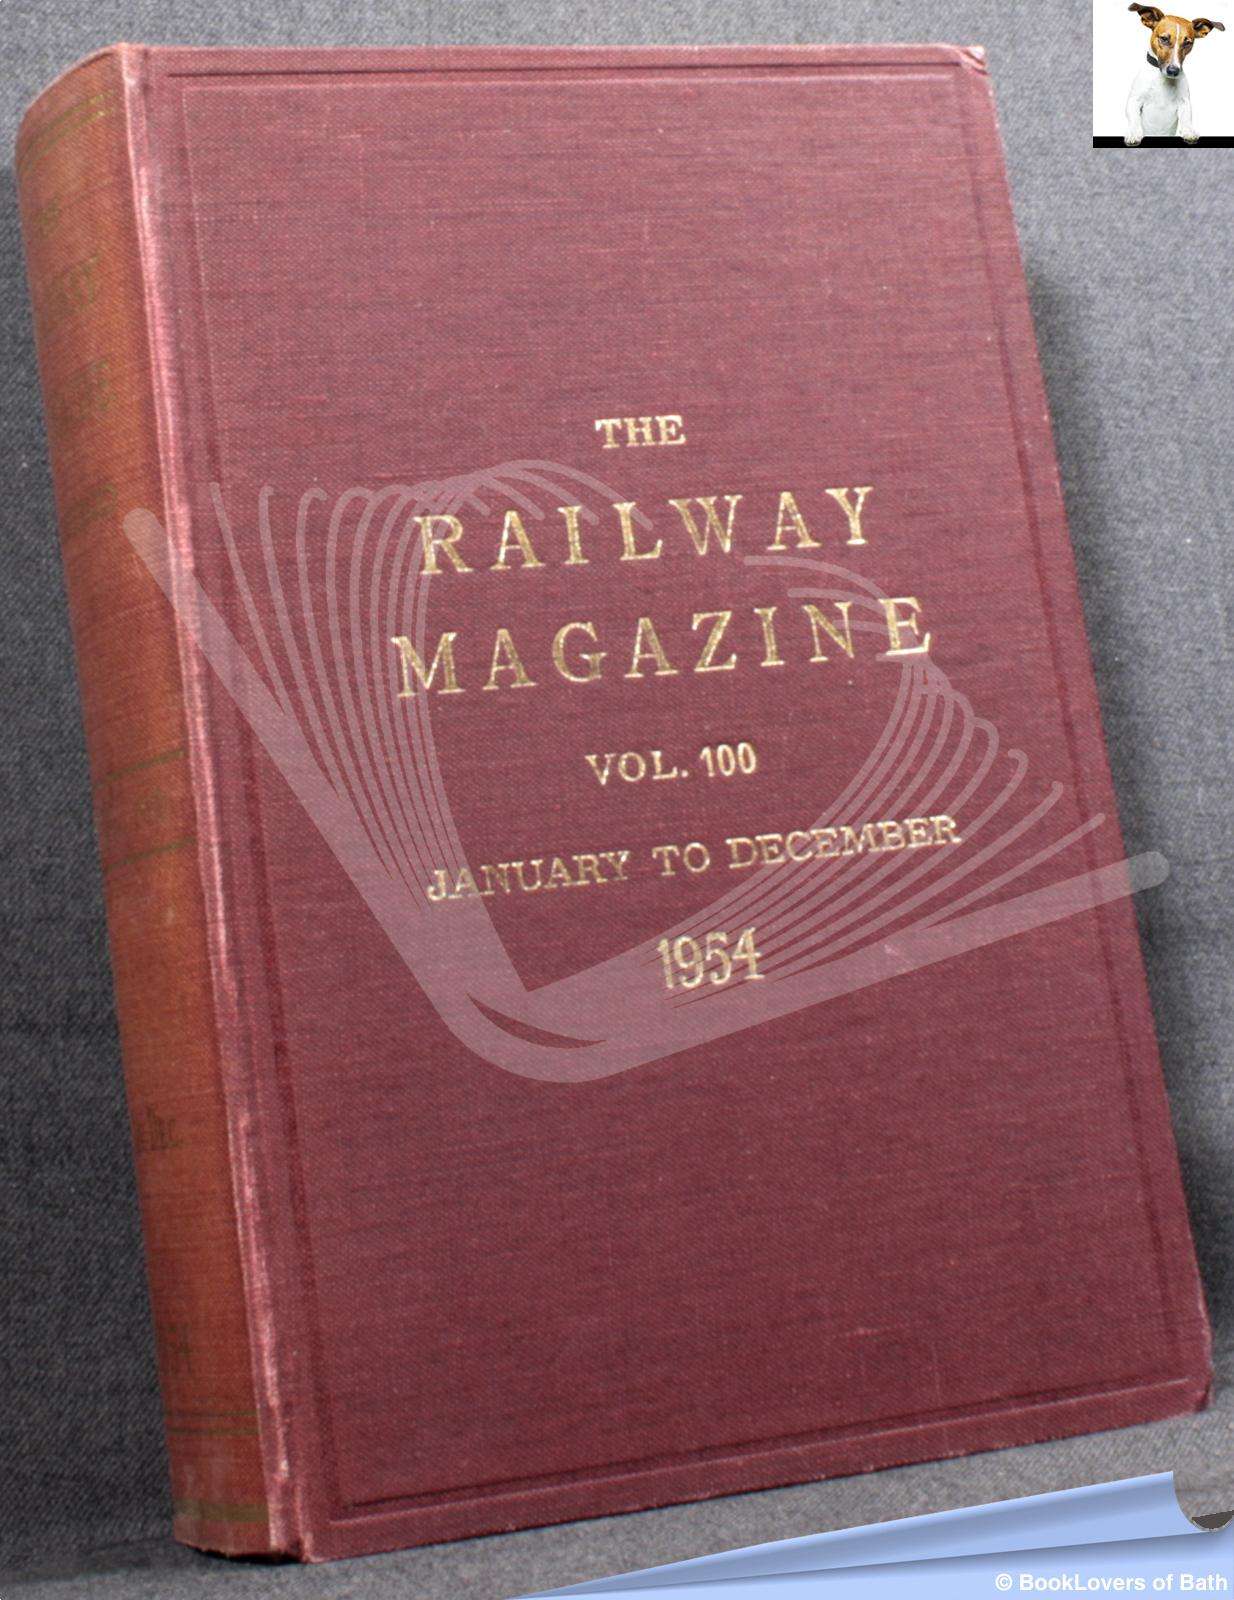 The Railway Magazine Vol. 100 January to December 1954 - Anon.